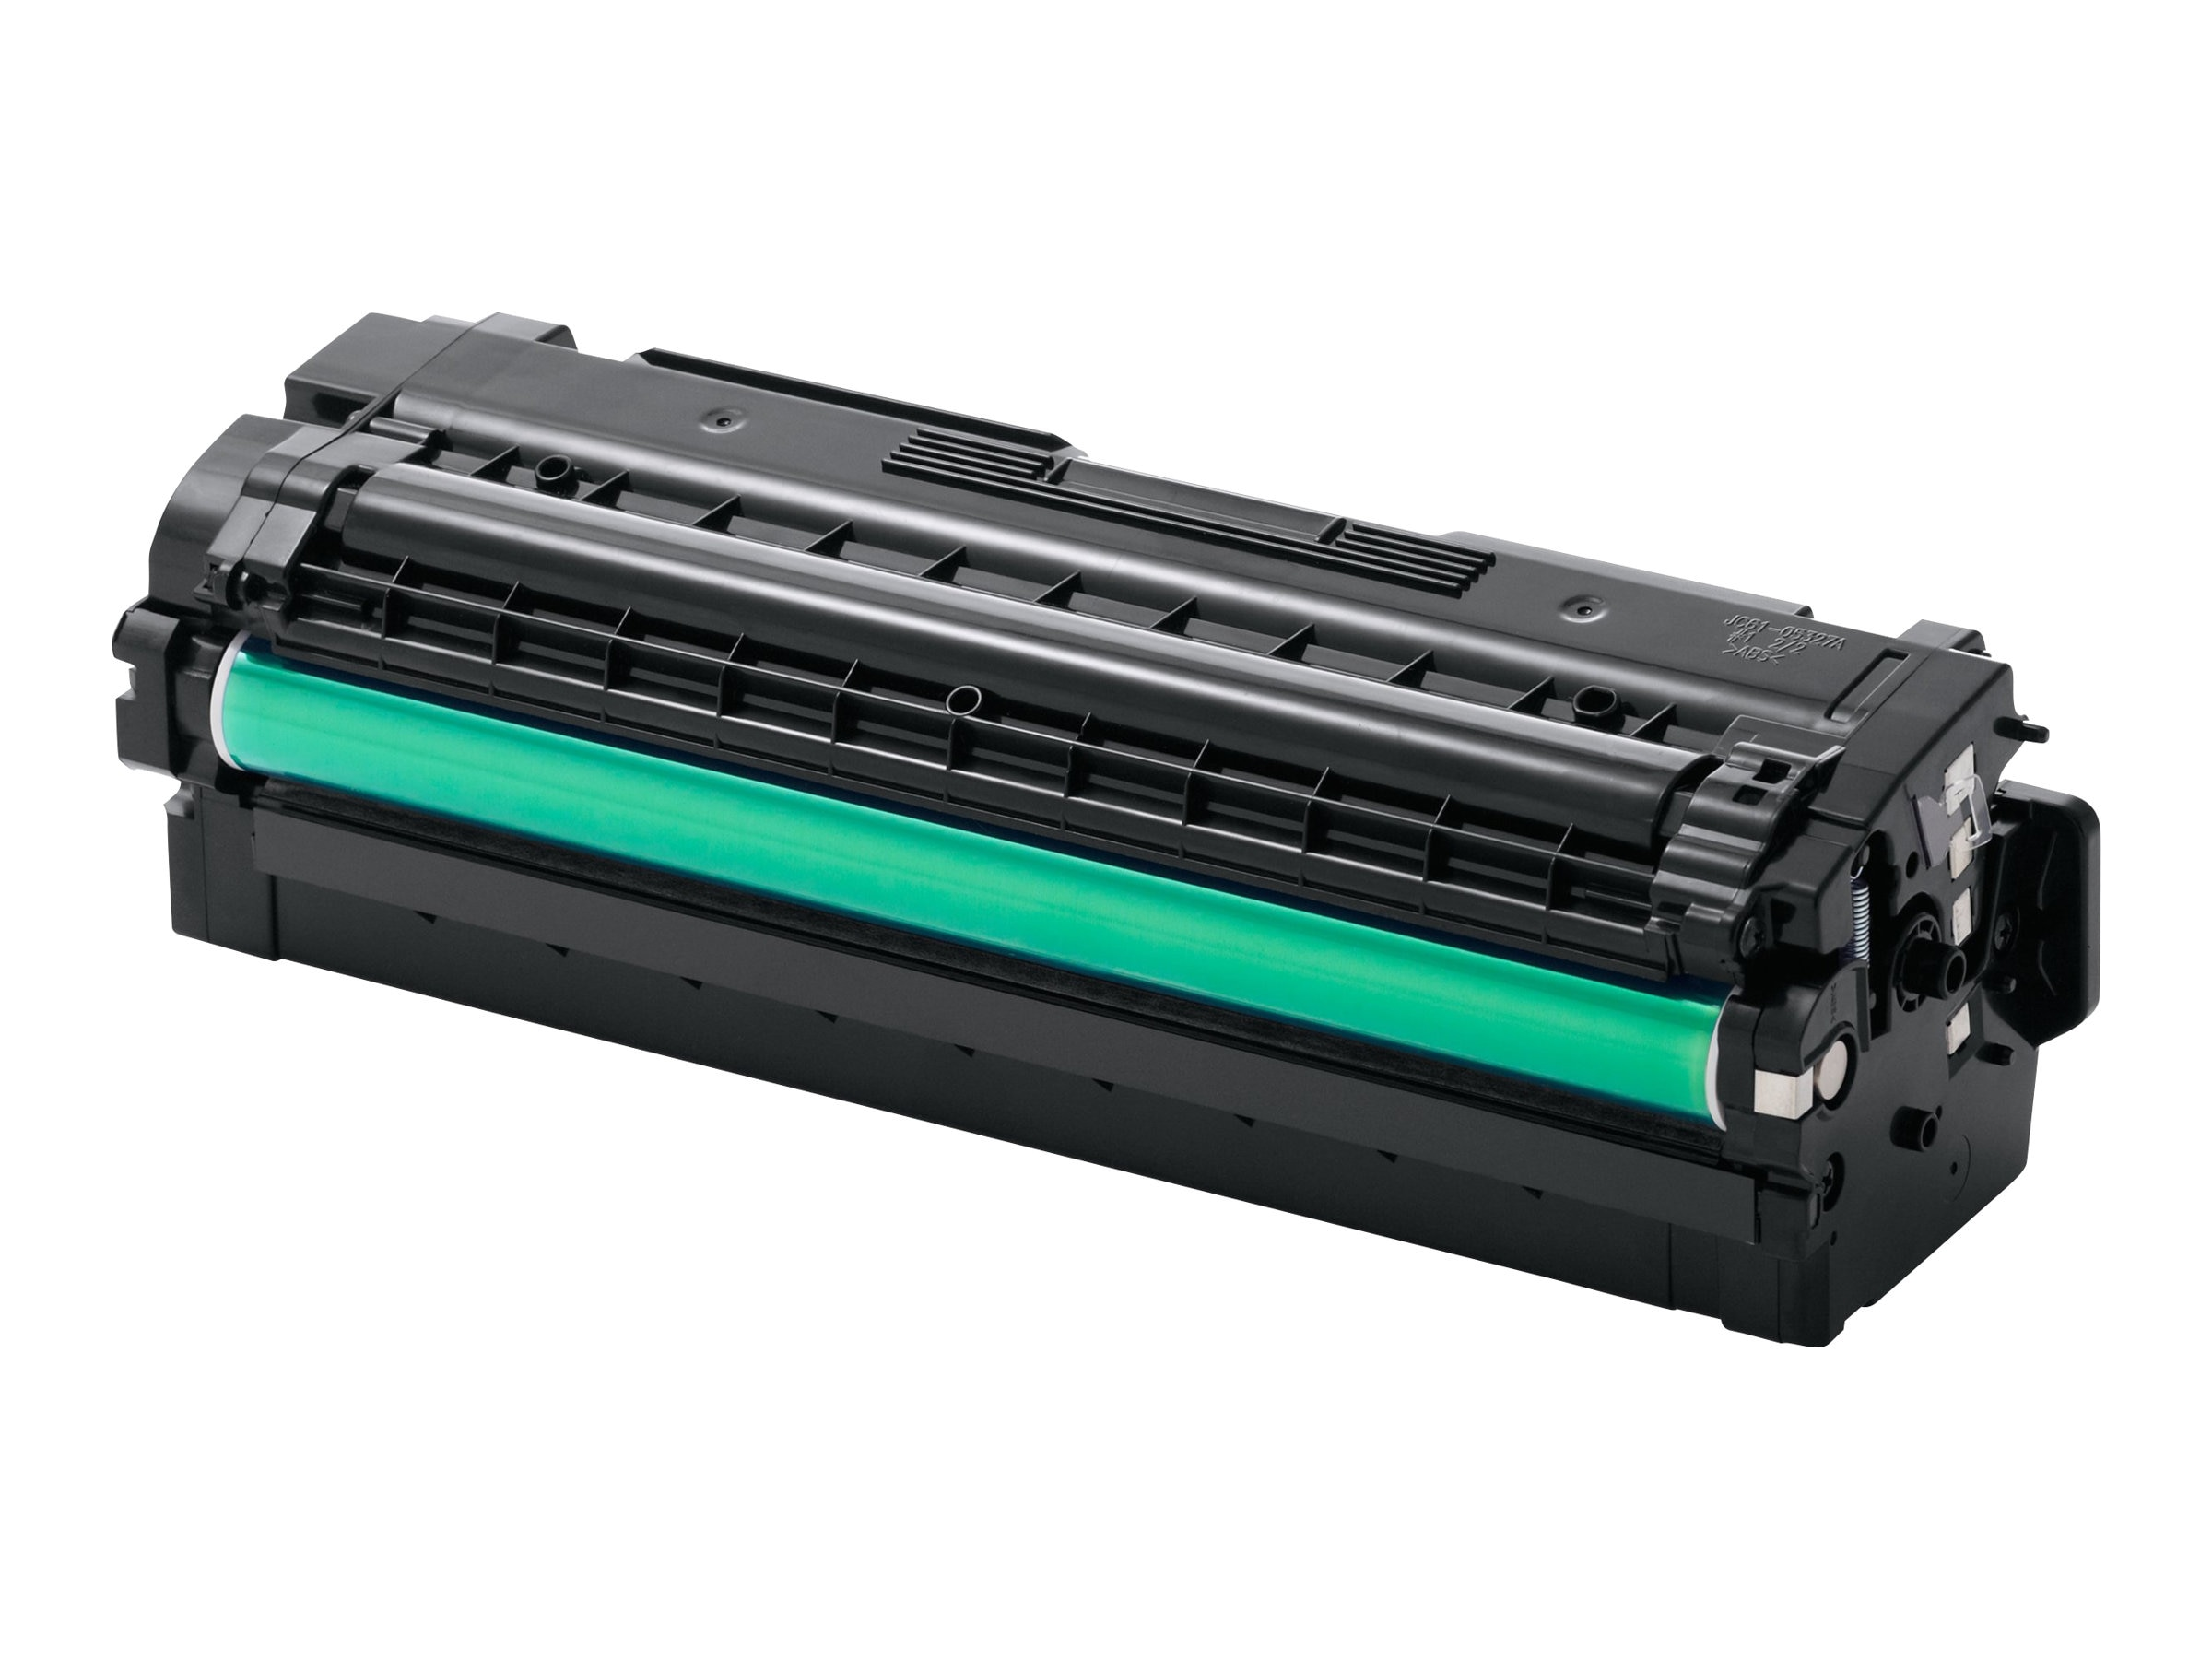 Samsung Cyan Toner Cartridge for ProXpress C2620DW & C2670FW, CLT-C505L/XAA